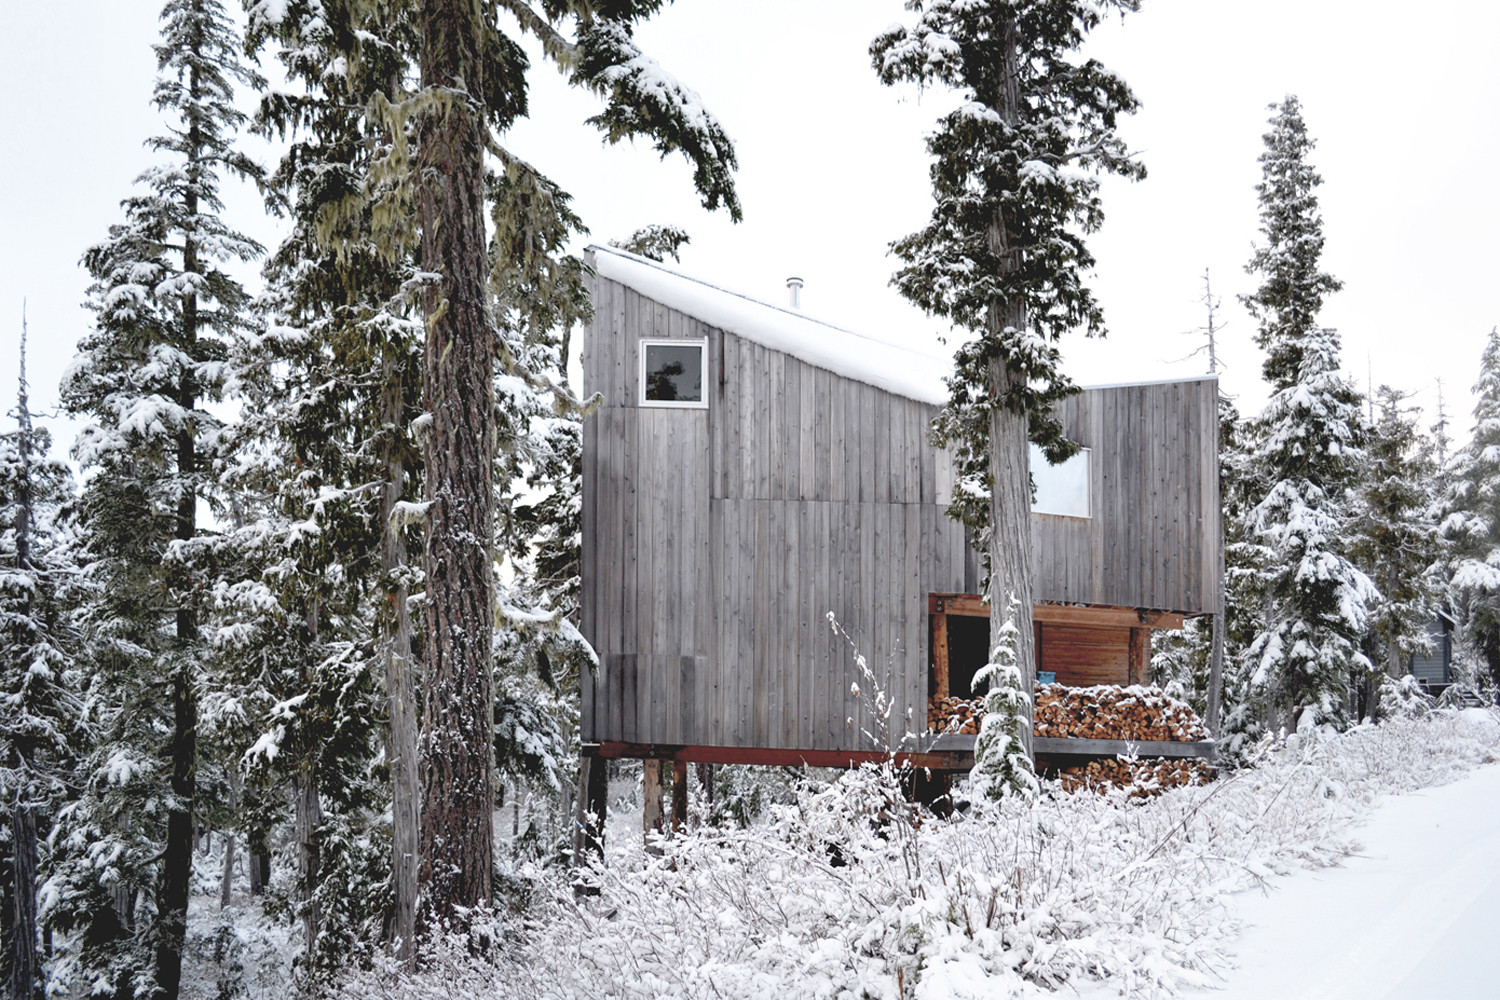 Alpine Cabin / Scott & Scott Architects, Courtesy of Scott & Scott Architects